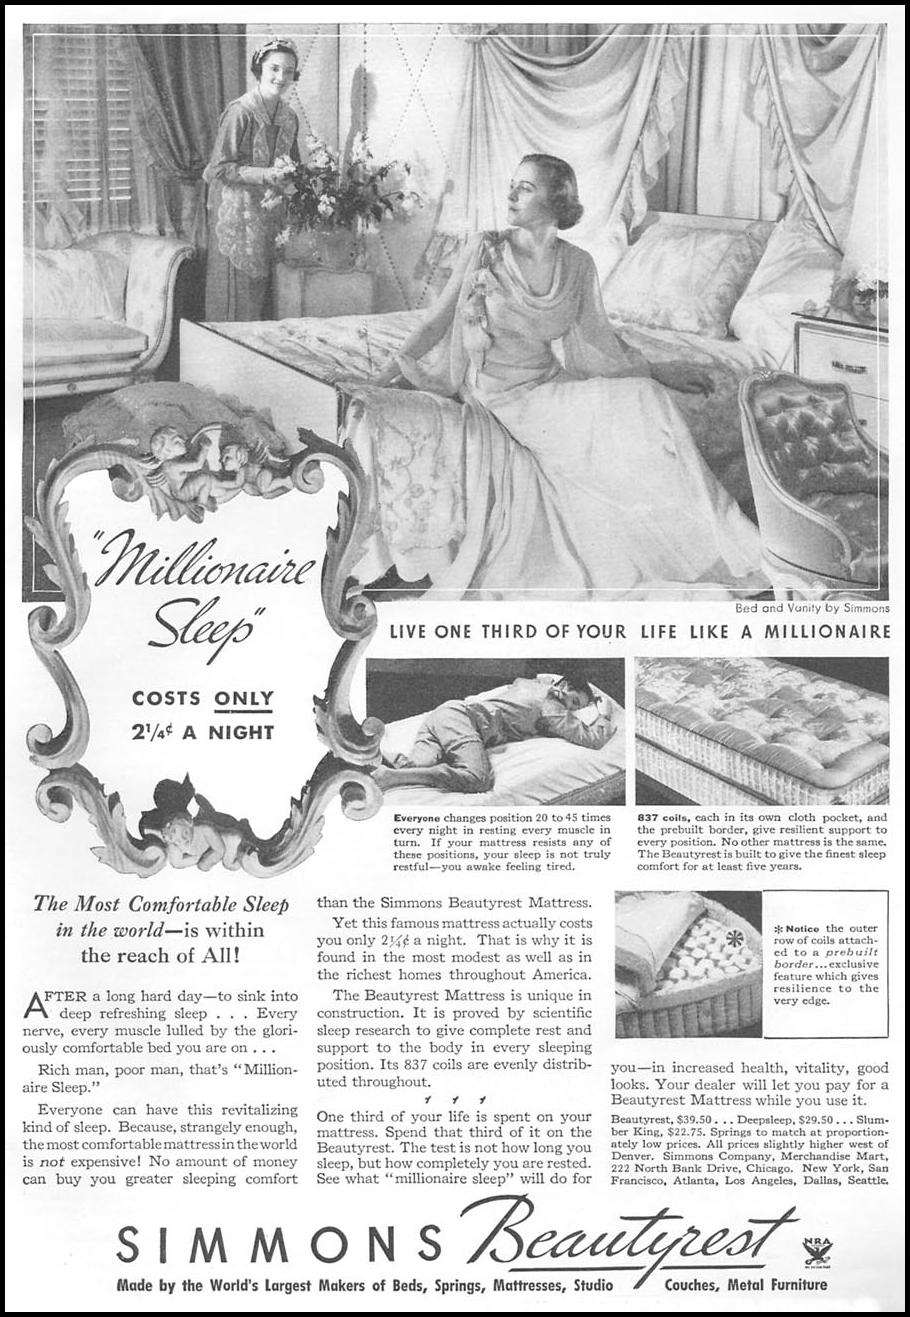 SIMMONS BEAUTYREST MATTRESS GOOD HOUSEKEEPING 06/01/1935 p. 137